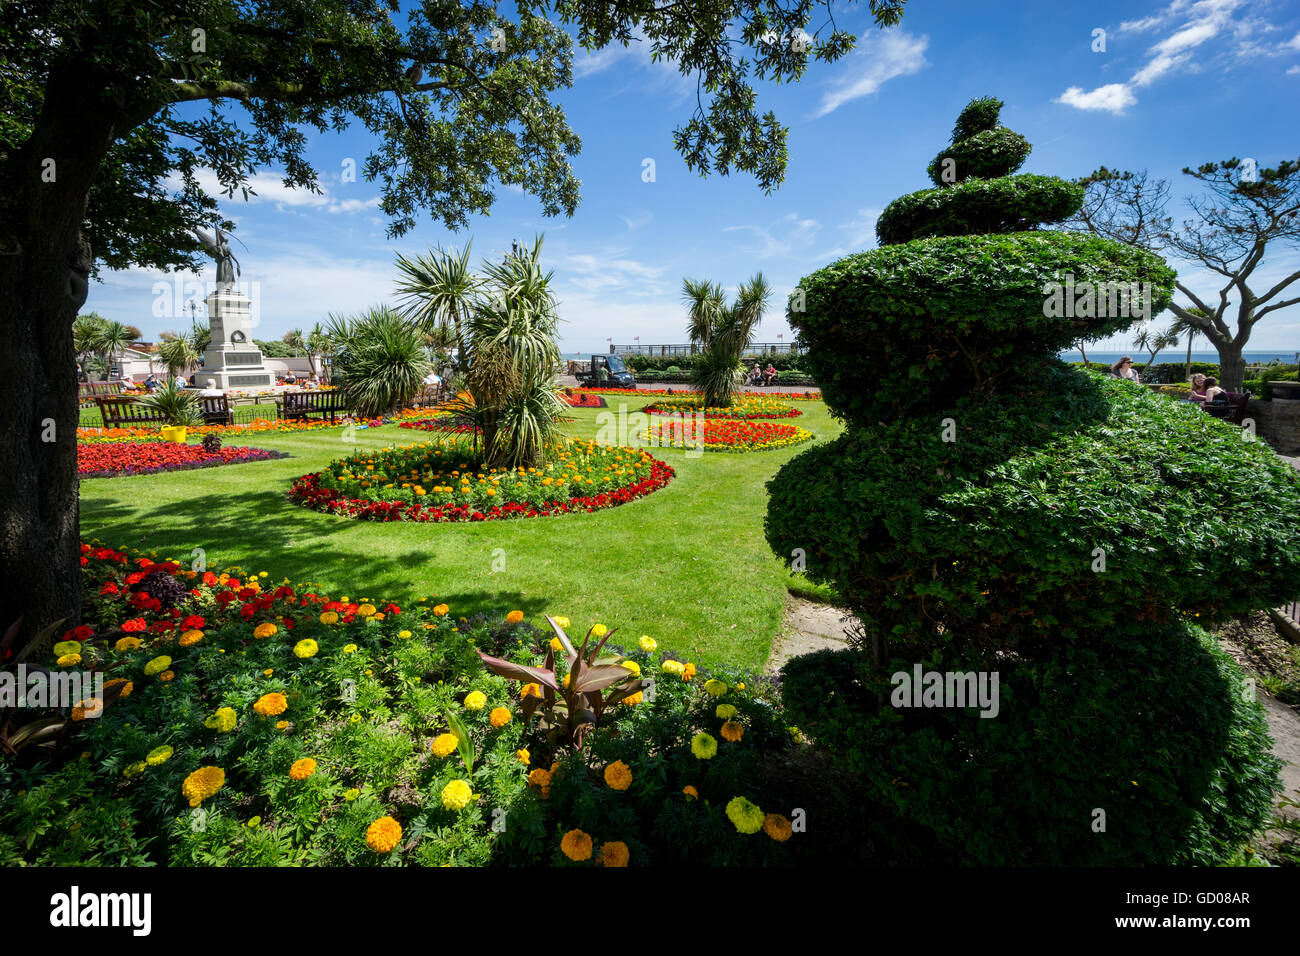 The Remembrance Garden in Clacton-on-Sea, Essex. - Stock Image